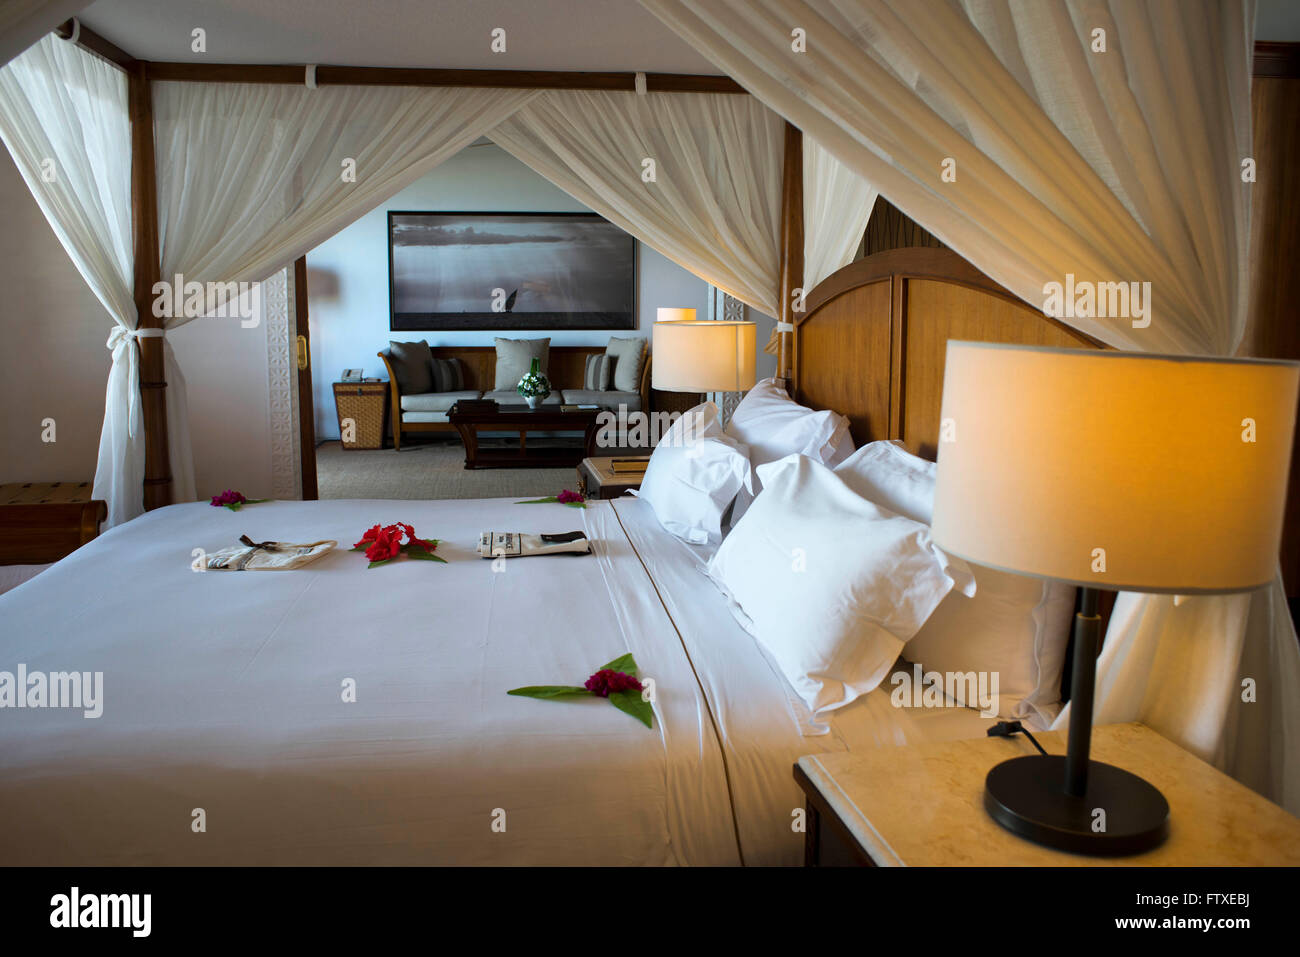 Bedroom and bed of the Luxury villa, suit room, in The Residence Hotel in Zanzibar island a semi-autonomous part - Stock Image